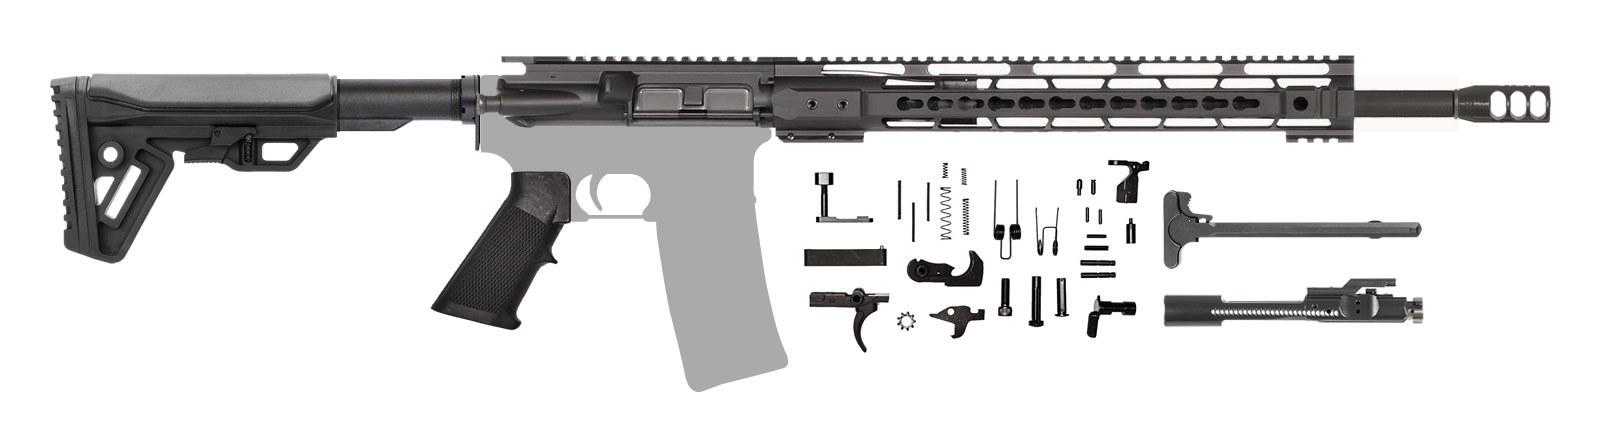 "Grendel AR-15 Rifle Kit 18"" 6.5 Grendel with 15"" CBC Keymod Rail"